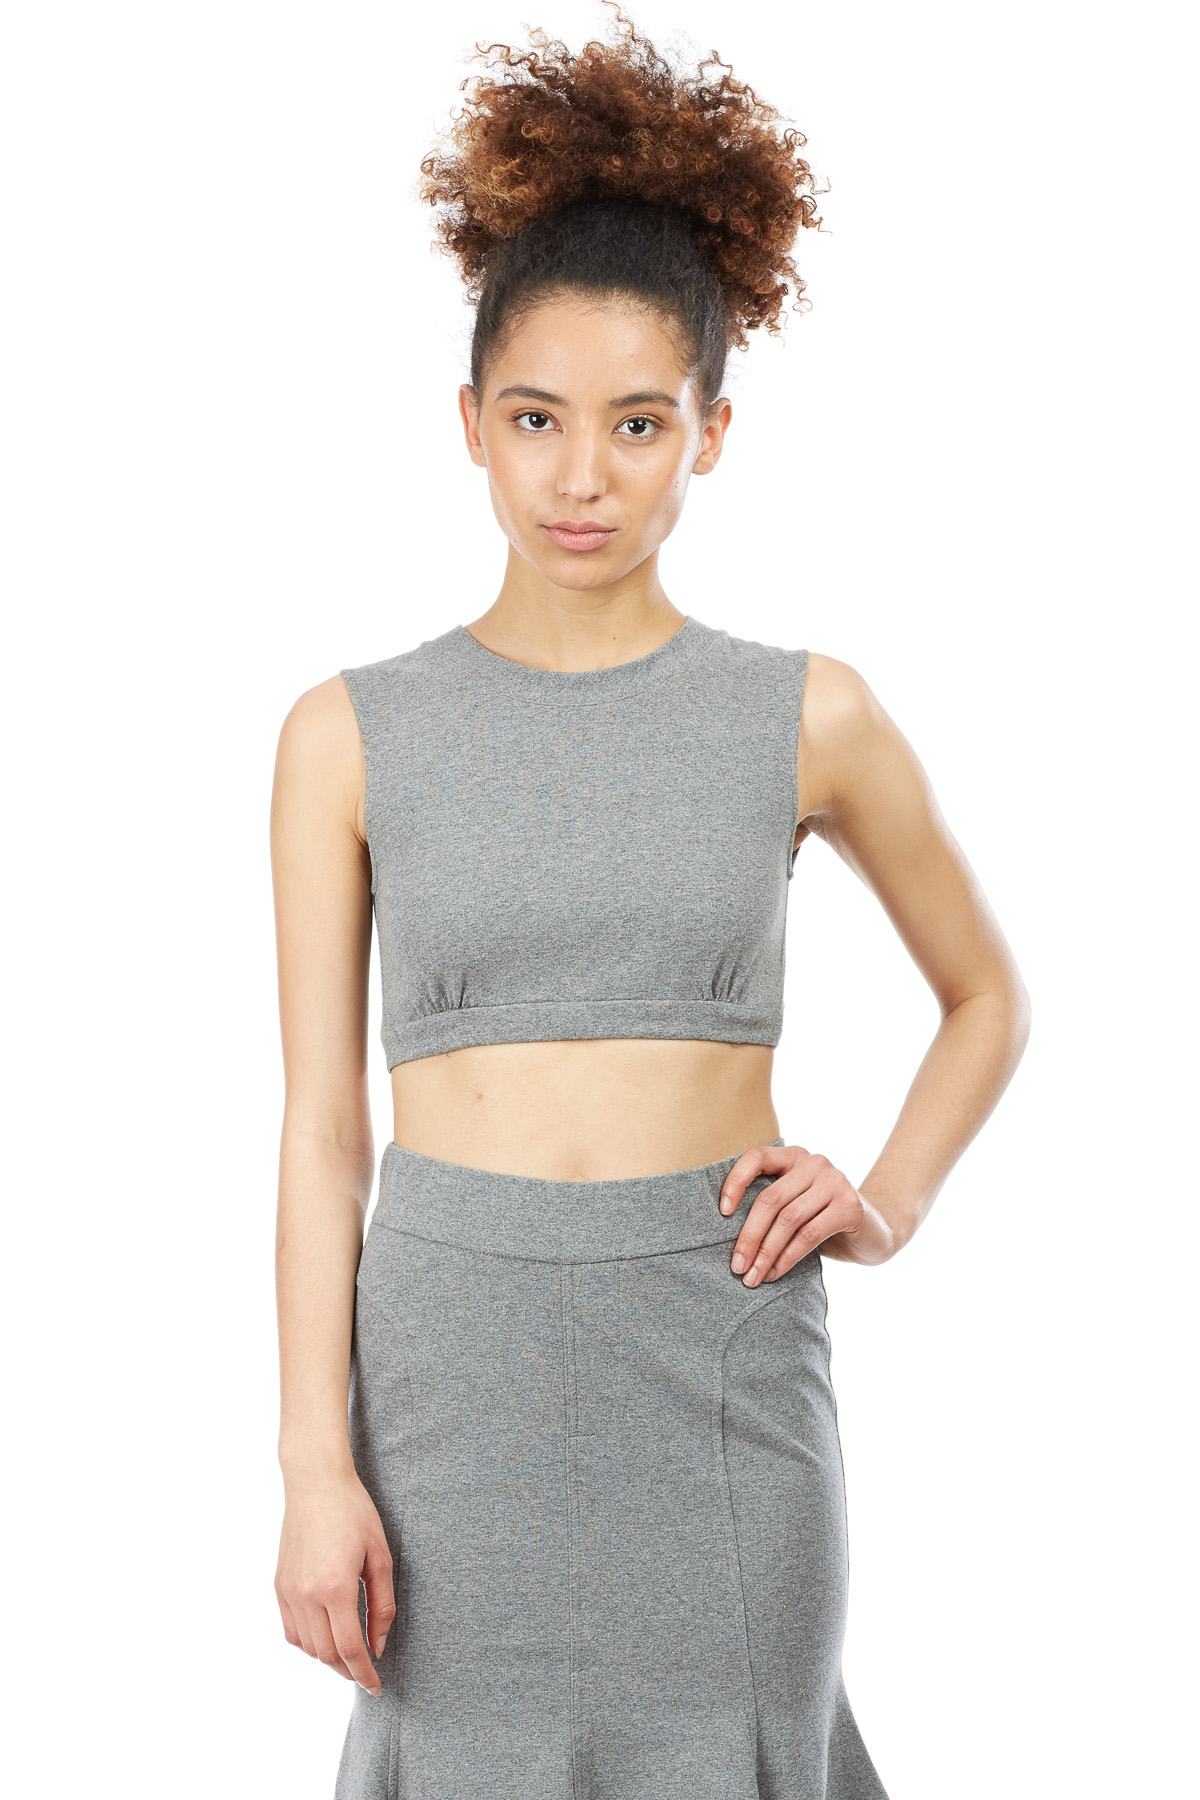 Norma Kamali Sleeveless Midriff Top - WOMEN - Tops - Norma Kamali - OPENING CEREMONY